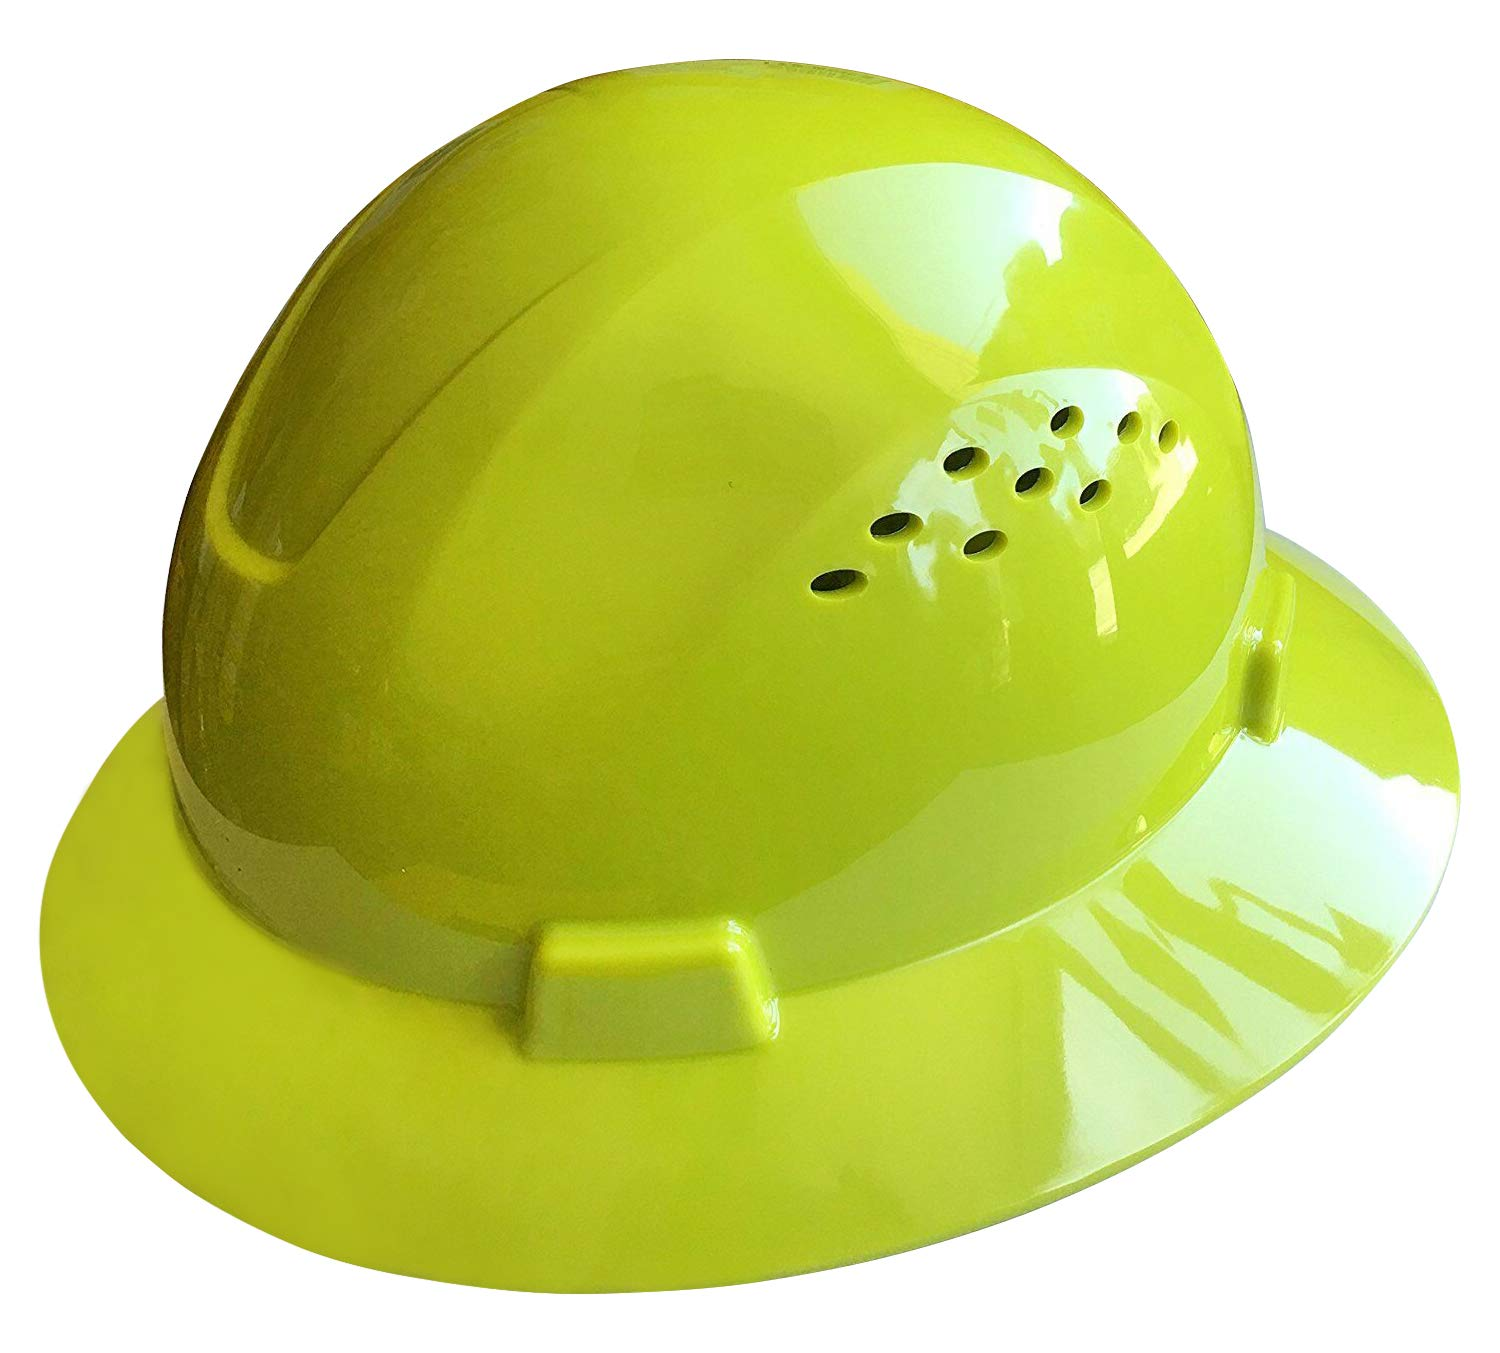 Noa Store HDPE Lime Full Brim Hard Hat with Fas-trac Suspension